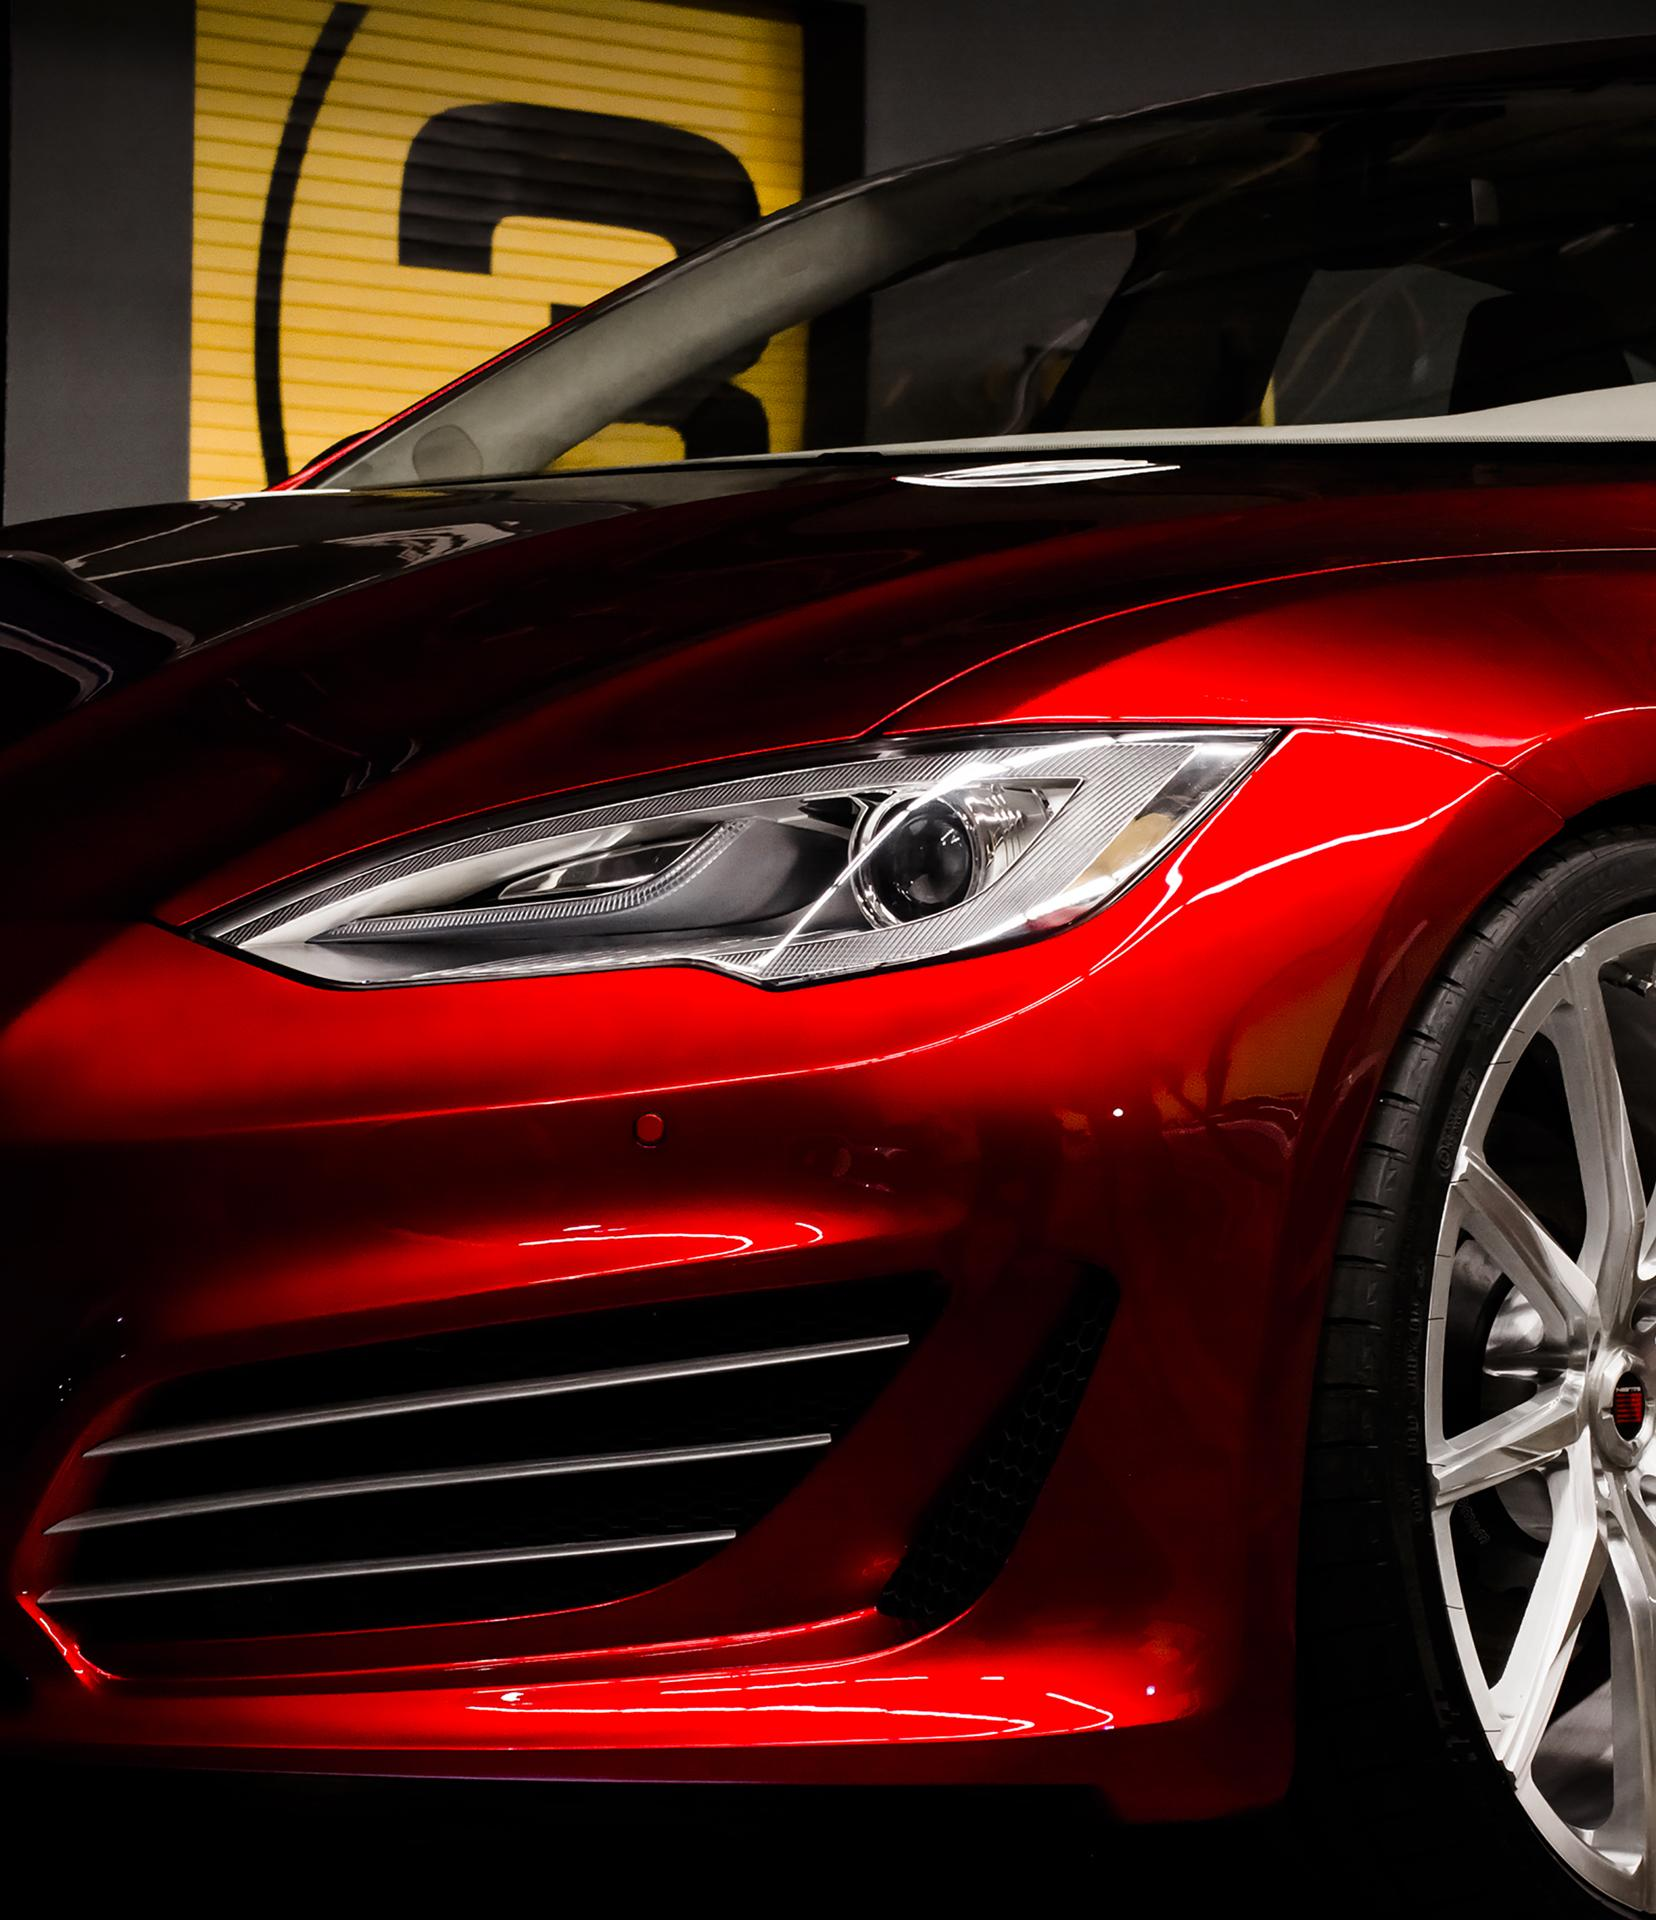 Saleen-Tesla Model S FOURSIXTEEN is an electric monster